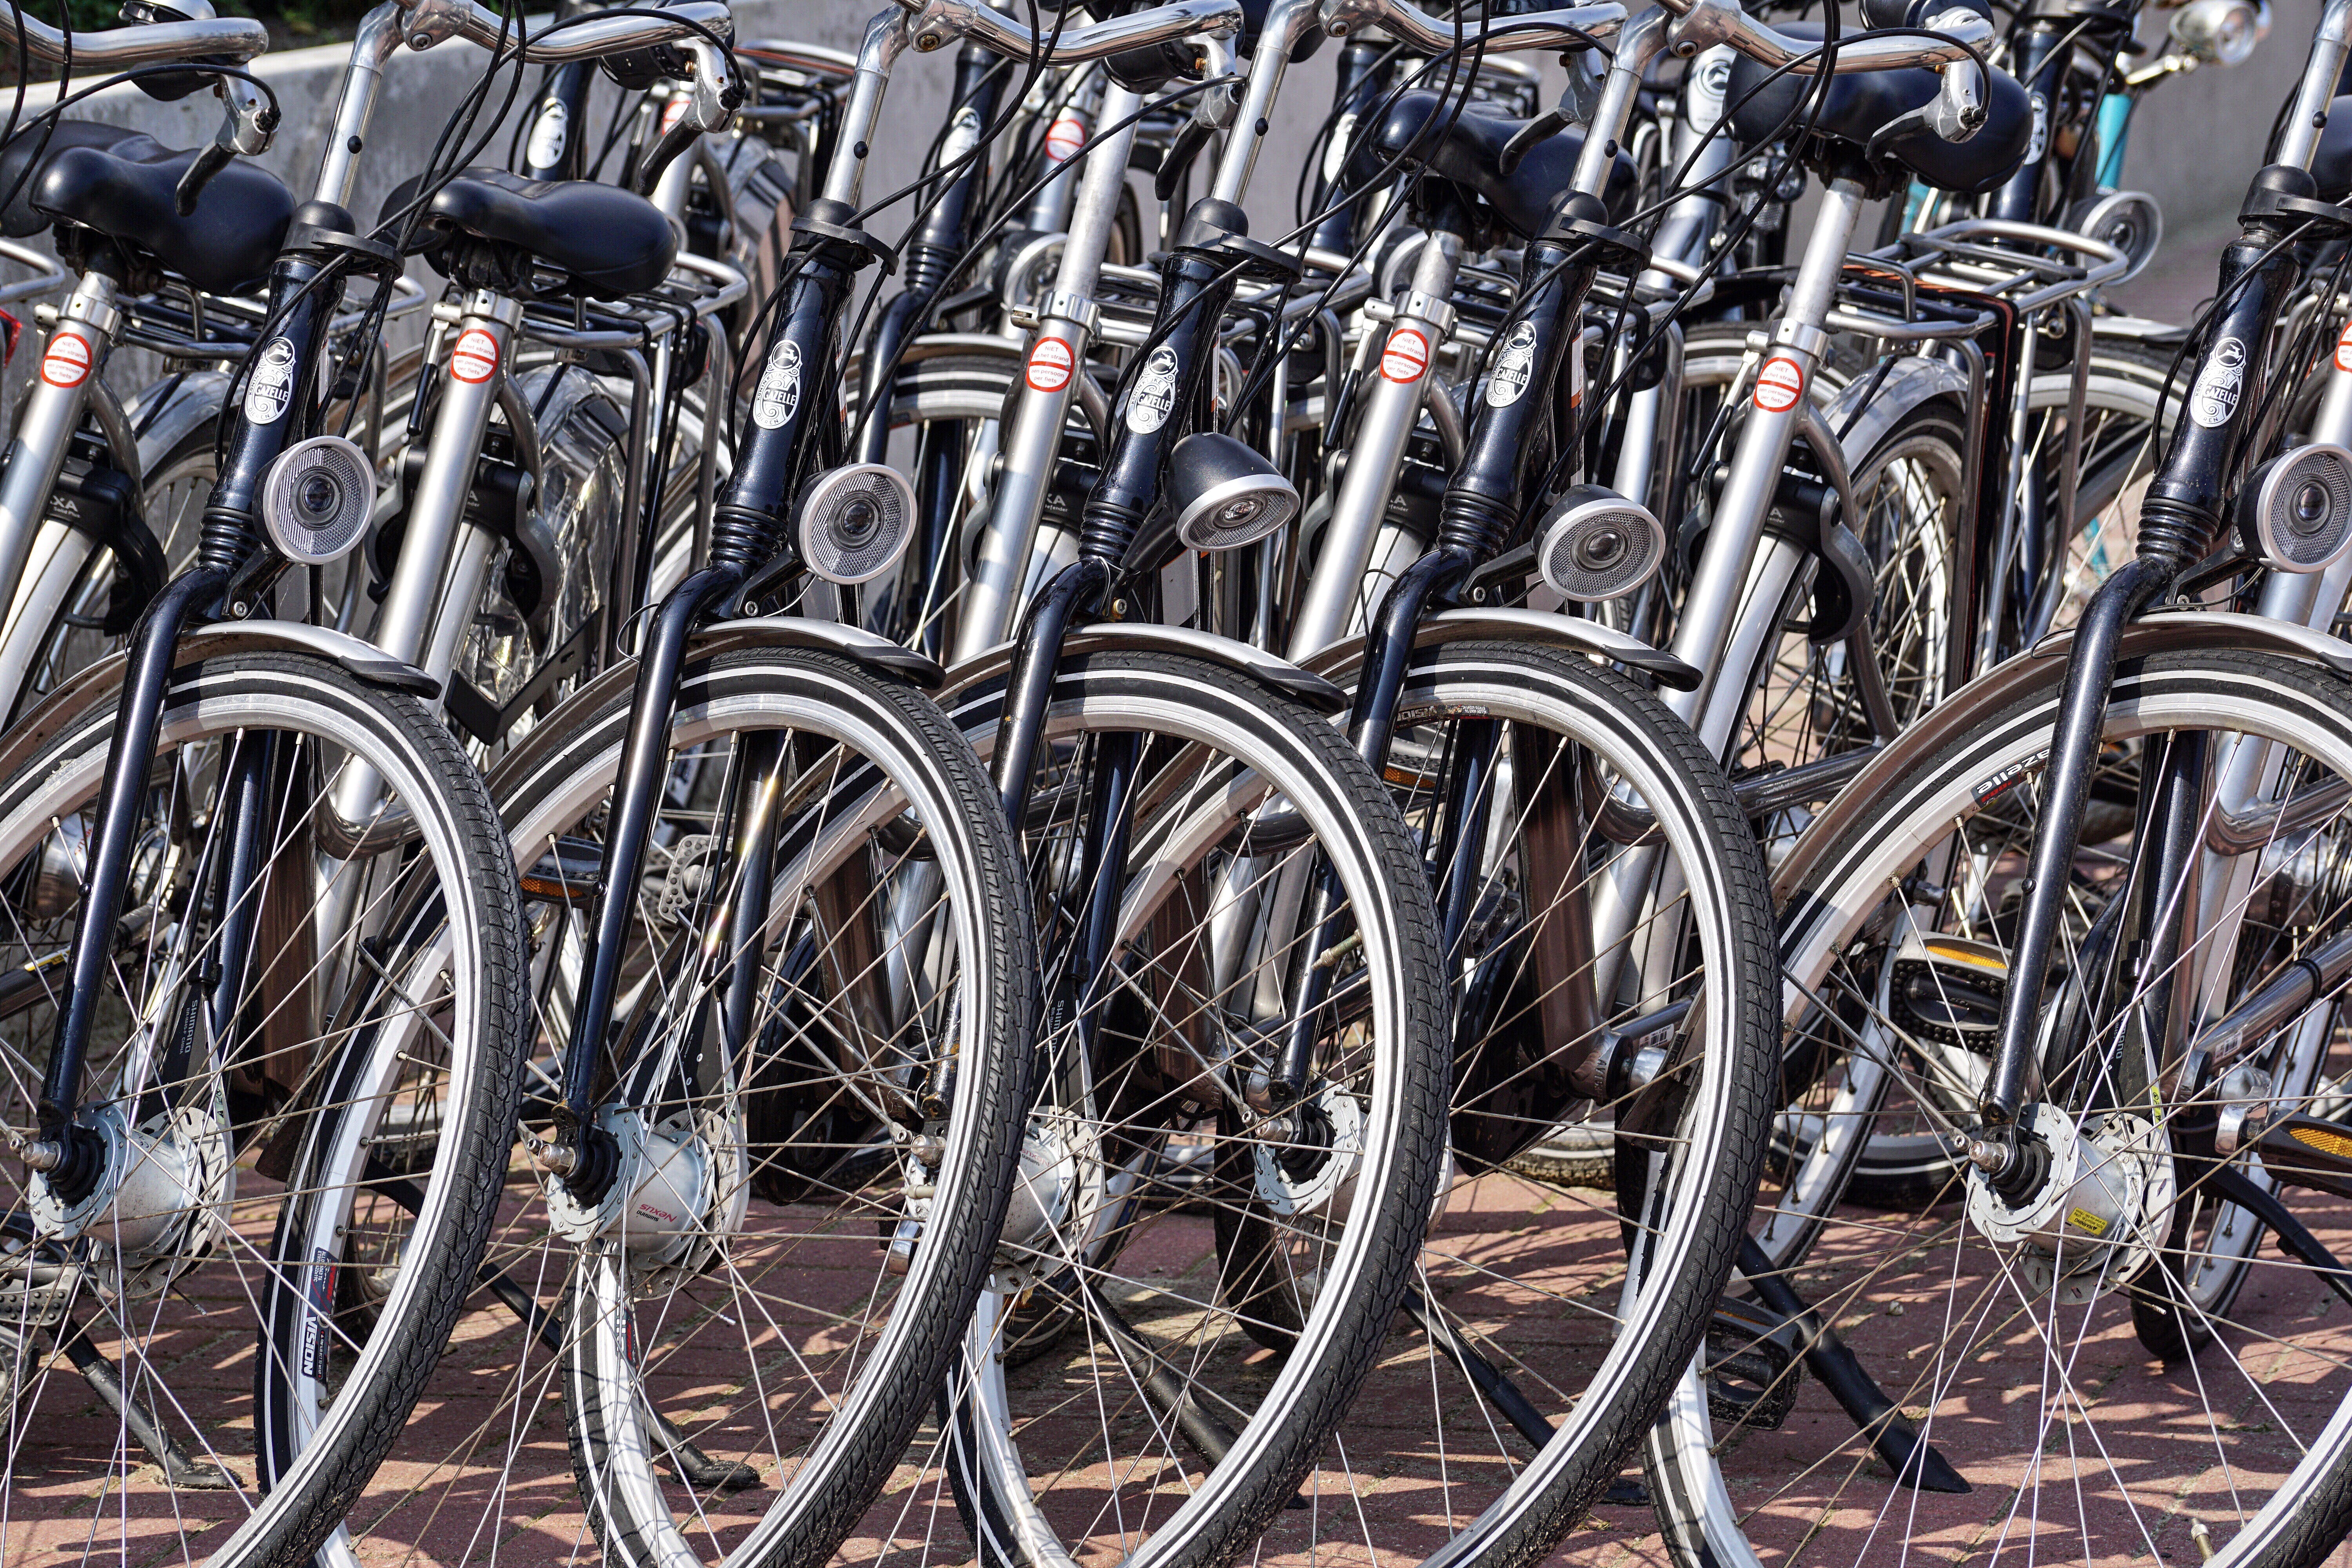 Gray and Black Bicycles Parked Near Gray Wall